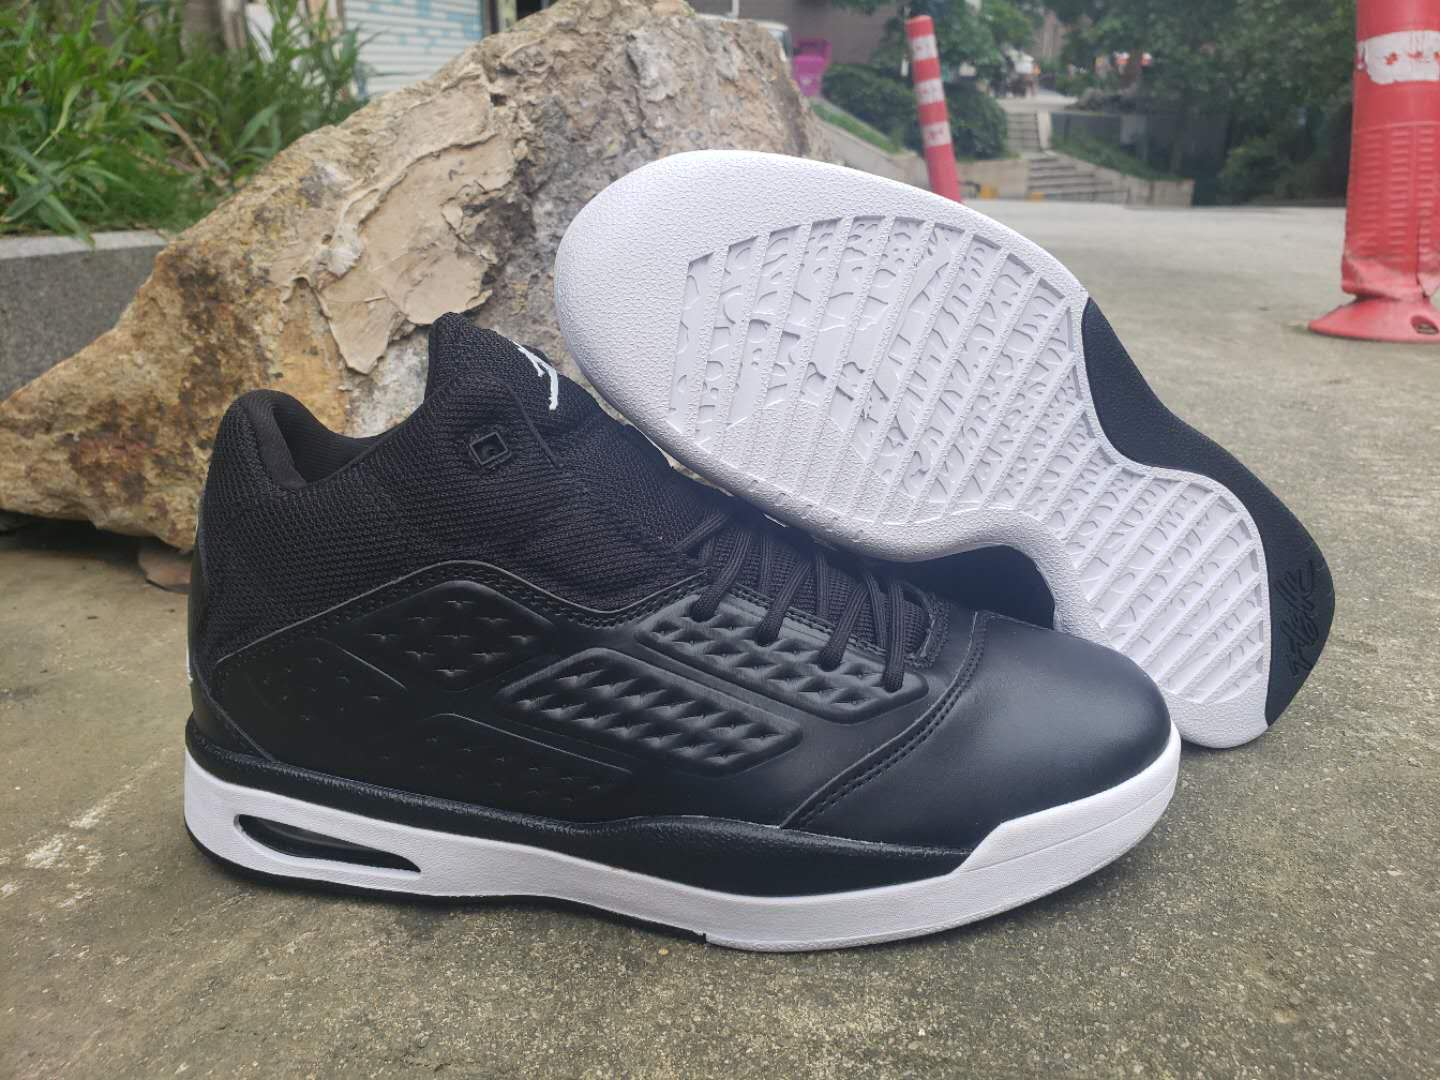 2019 Air Jordan New School Black White Shoes